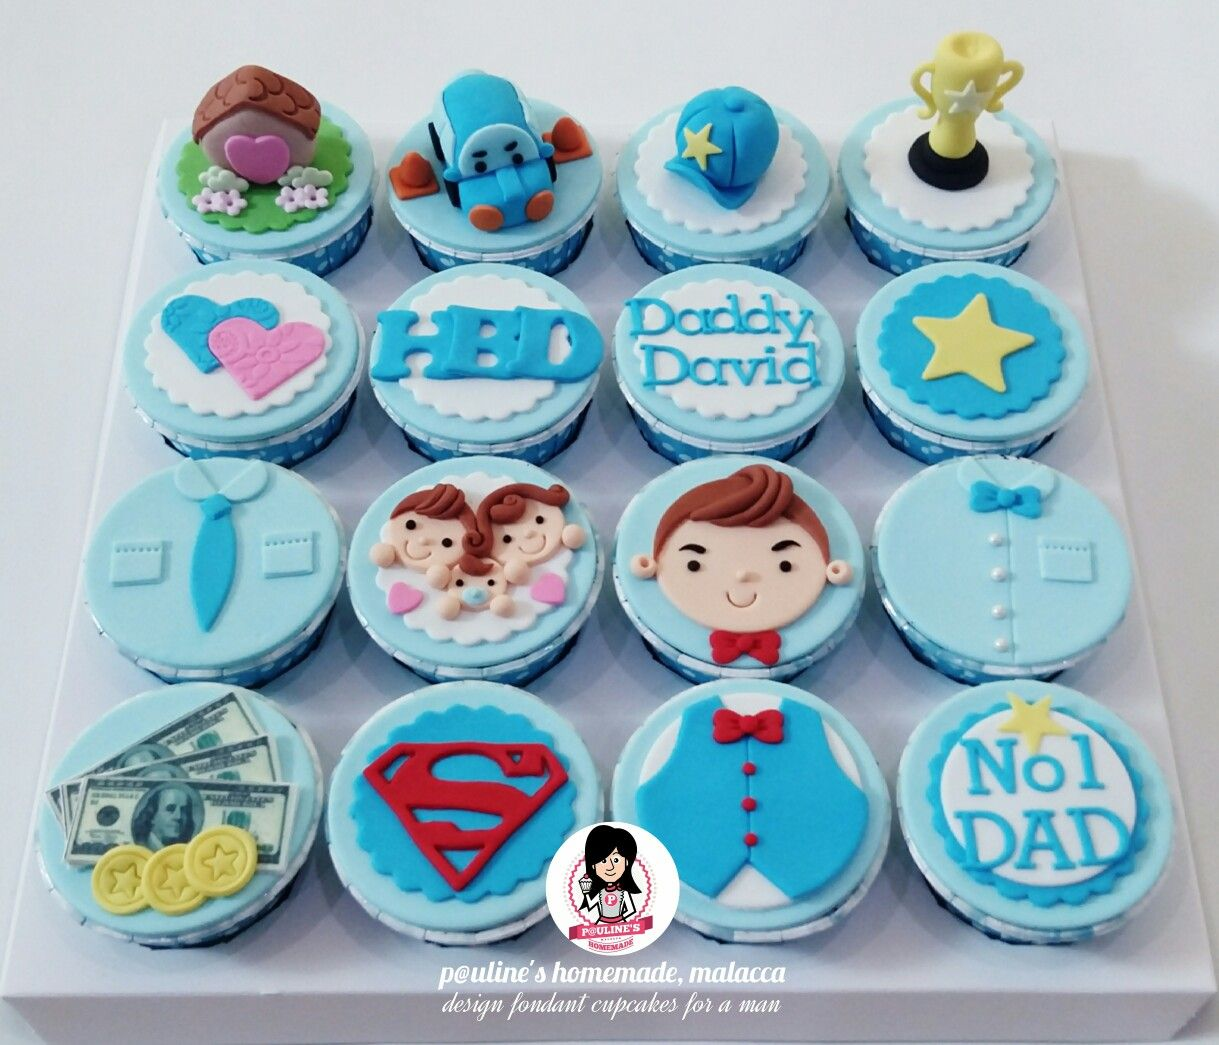 Design Fondant Cupcakes For A Dad With Images Fathers Day